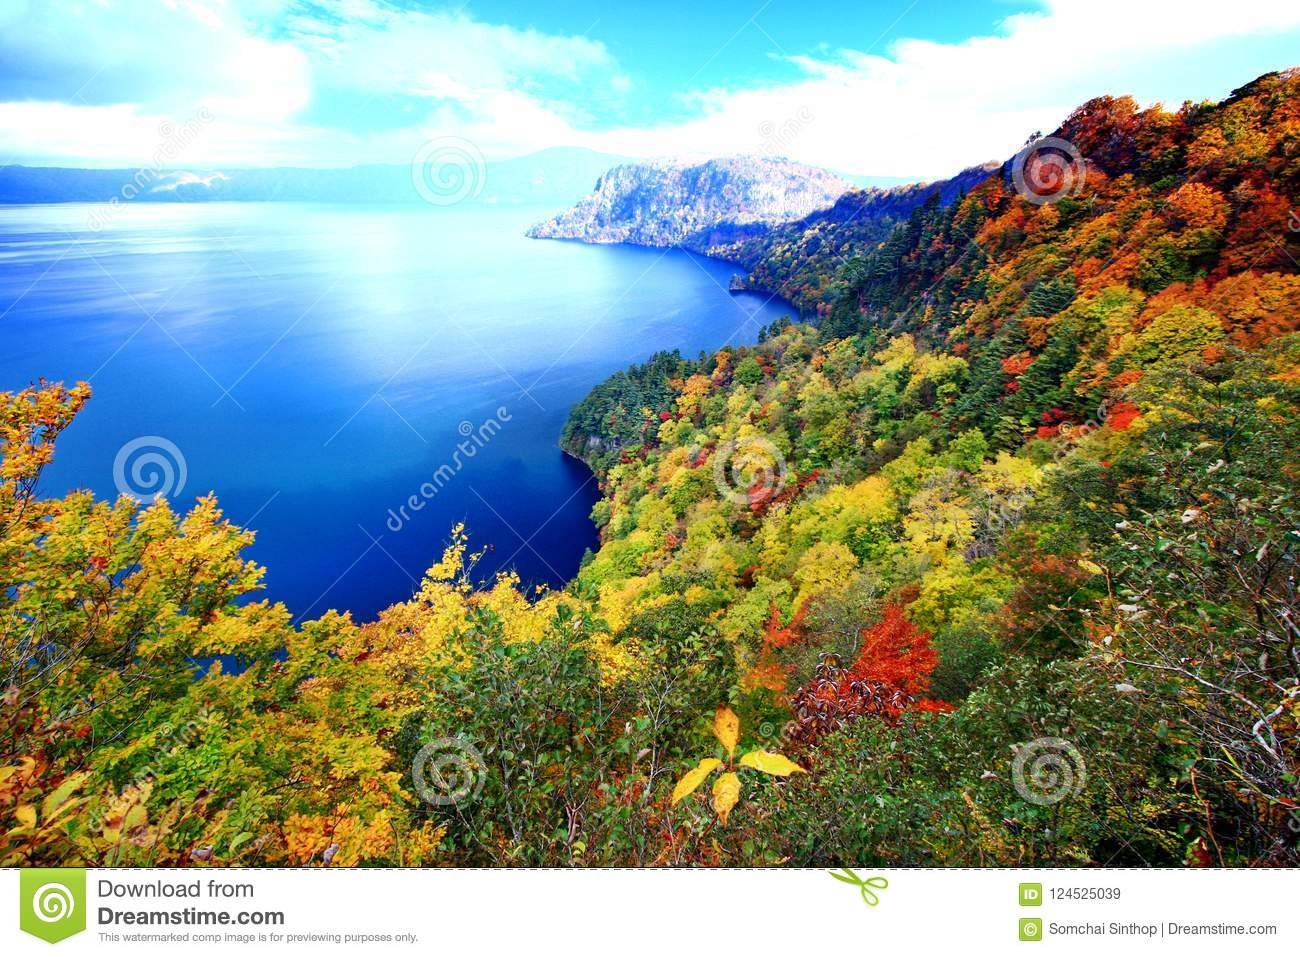 Aerial view of Lake Towada with colorful autumn foliage